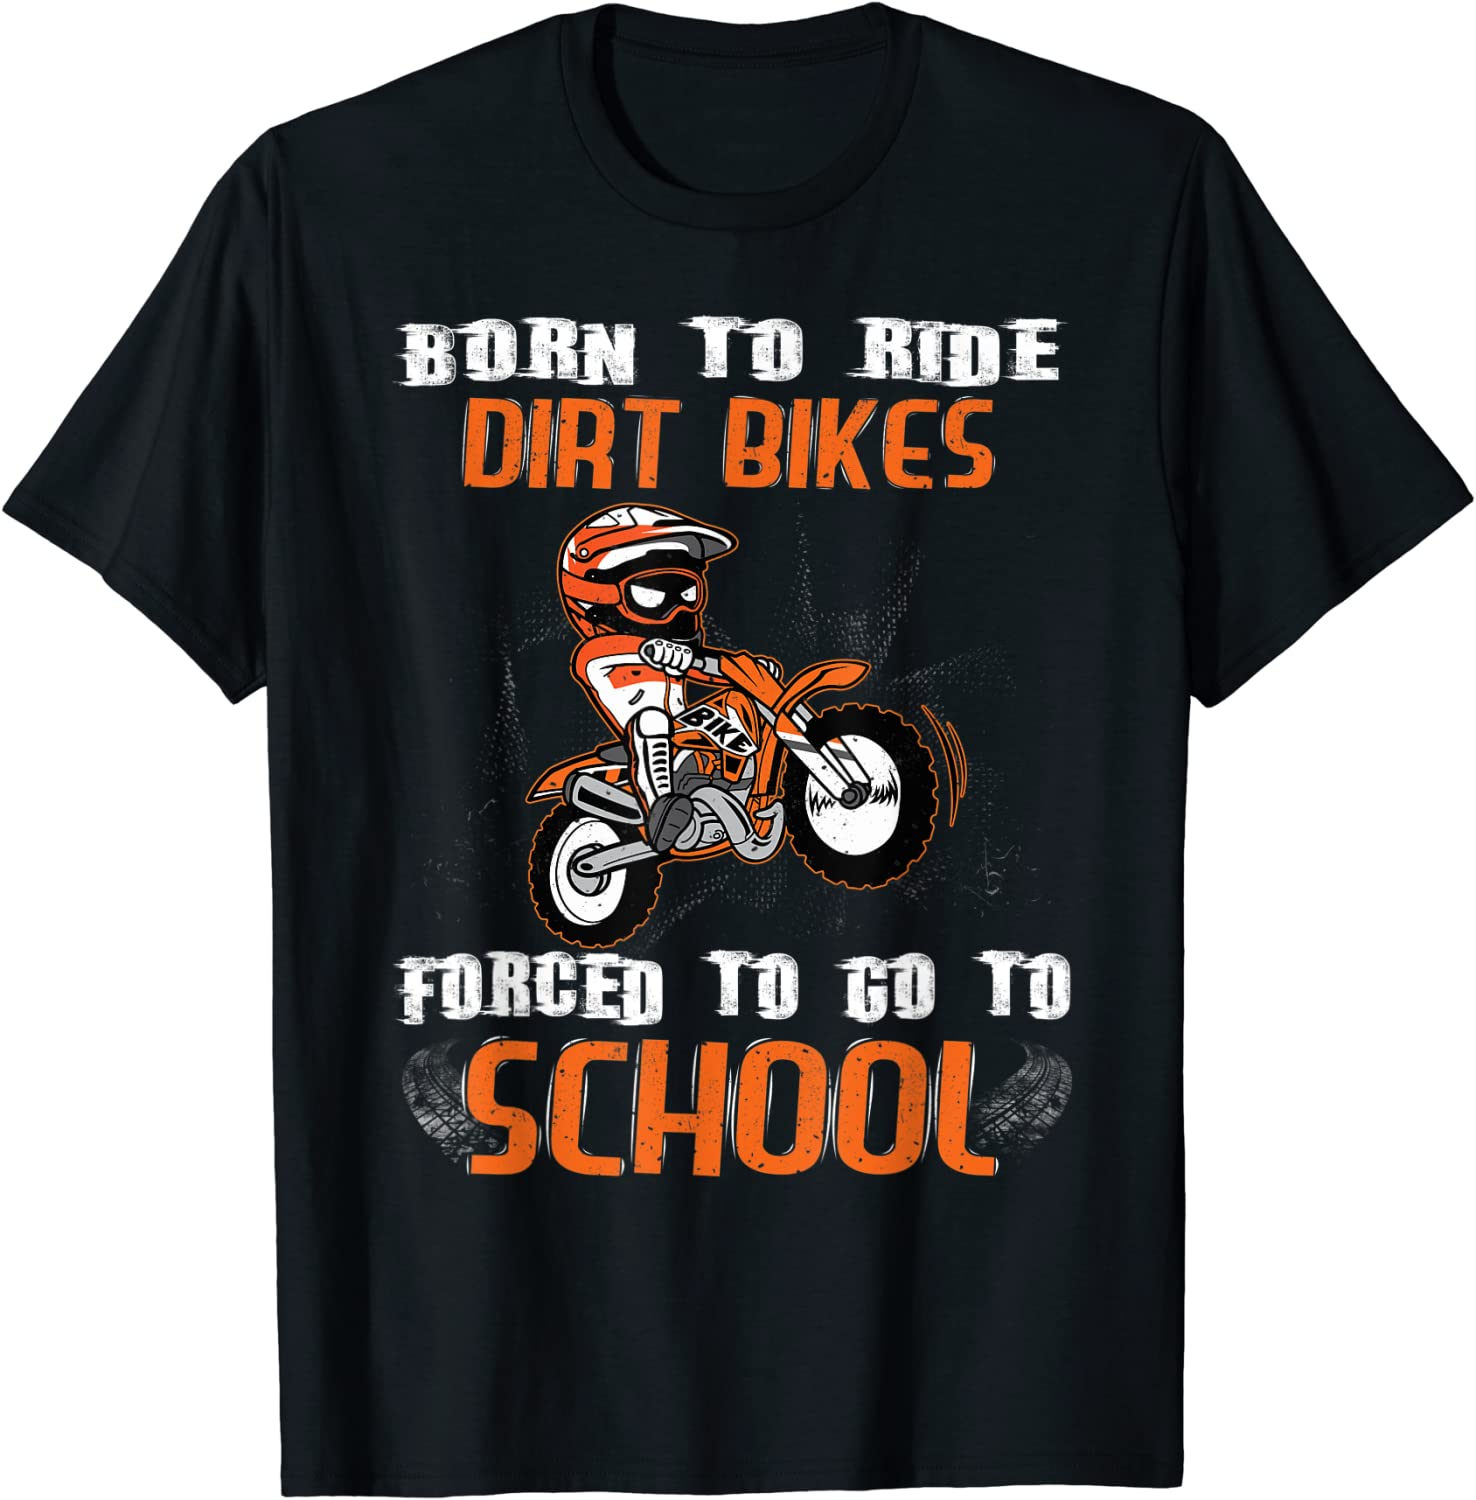 Born To Ride Dirt Today's only Bikes School Go T-Shirt Forced Bargain